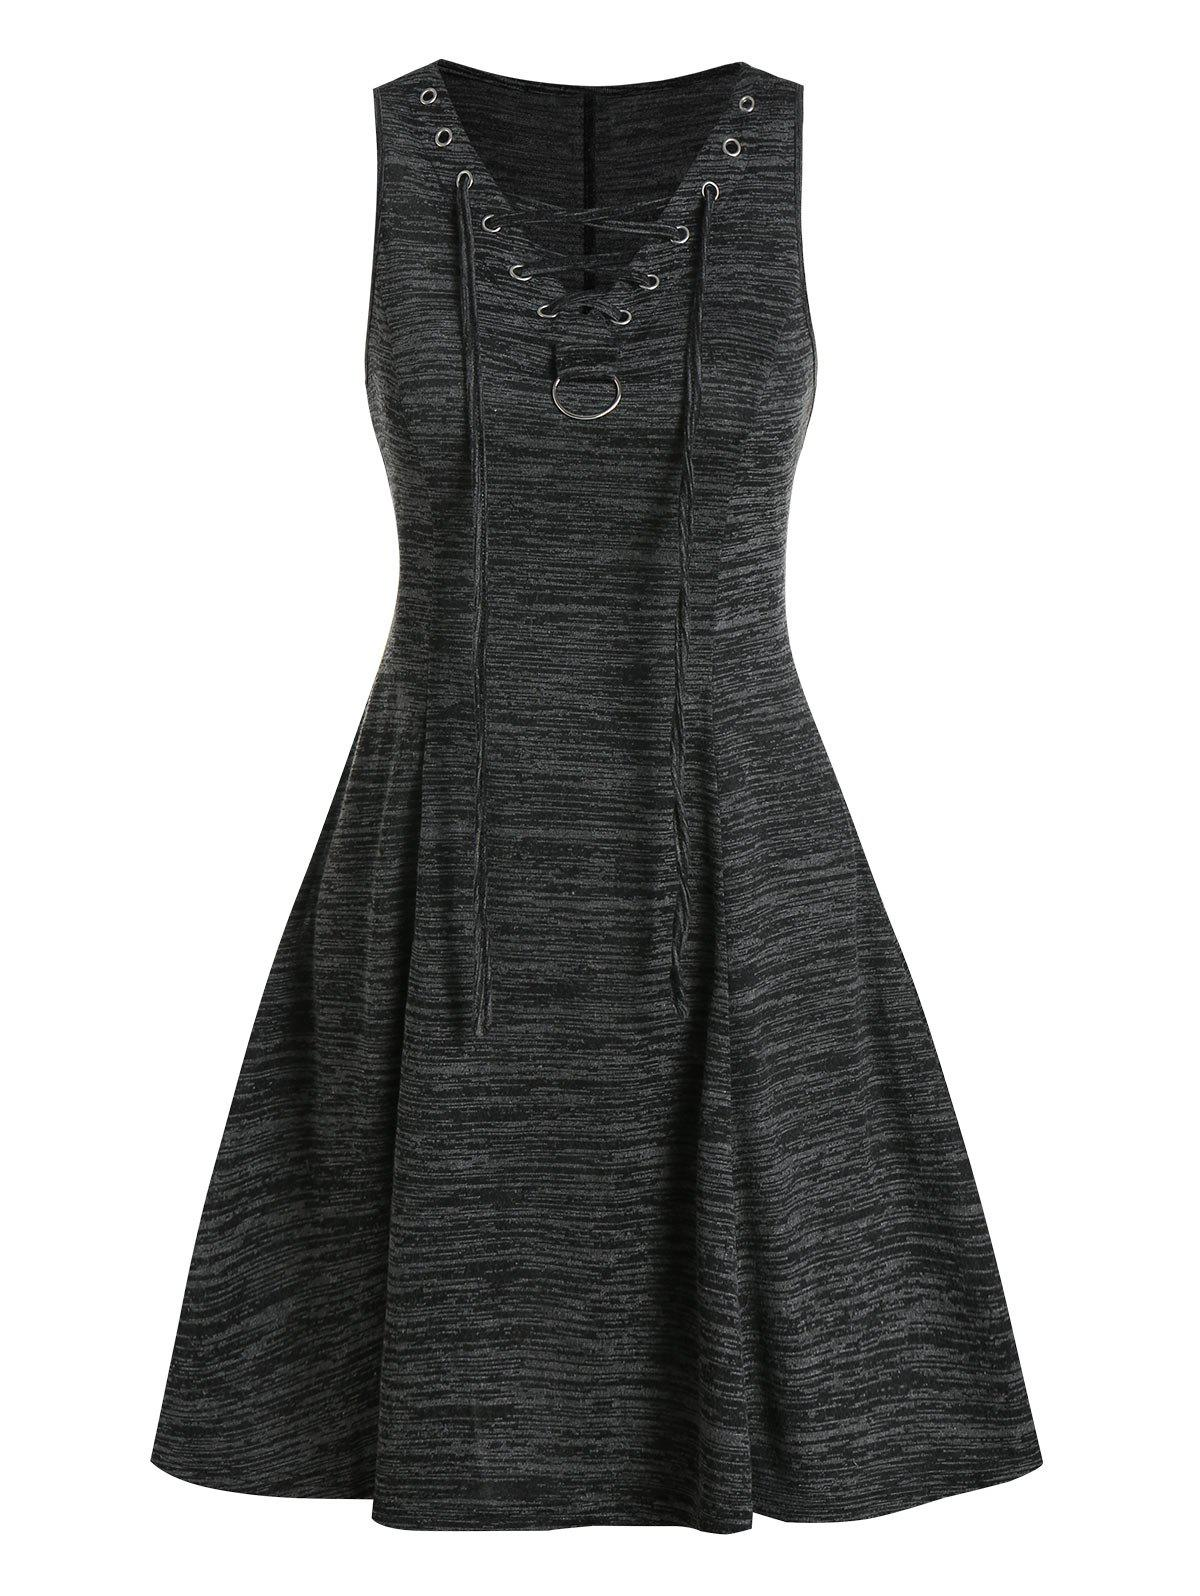 Lace Up Space Dye Fit And Flare Dress - BLACK 3XL